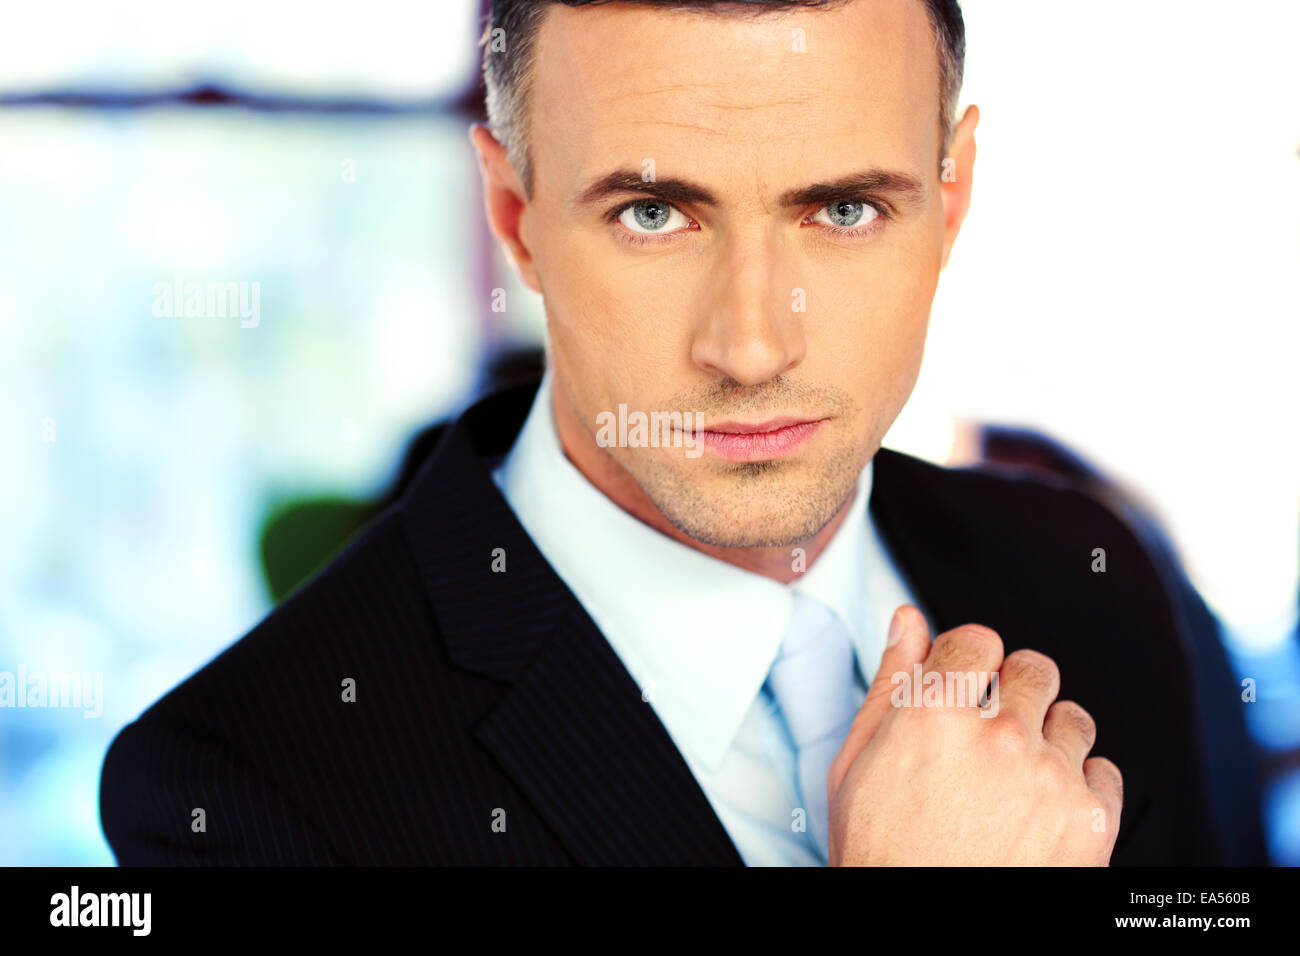 Closeup portrait of a serious businessman Photo Stock